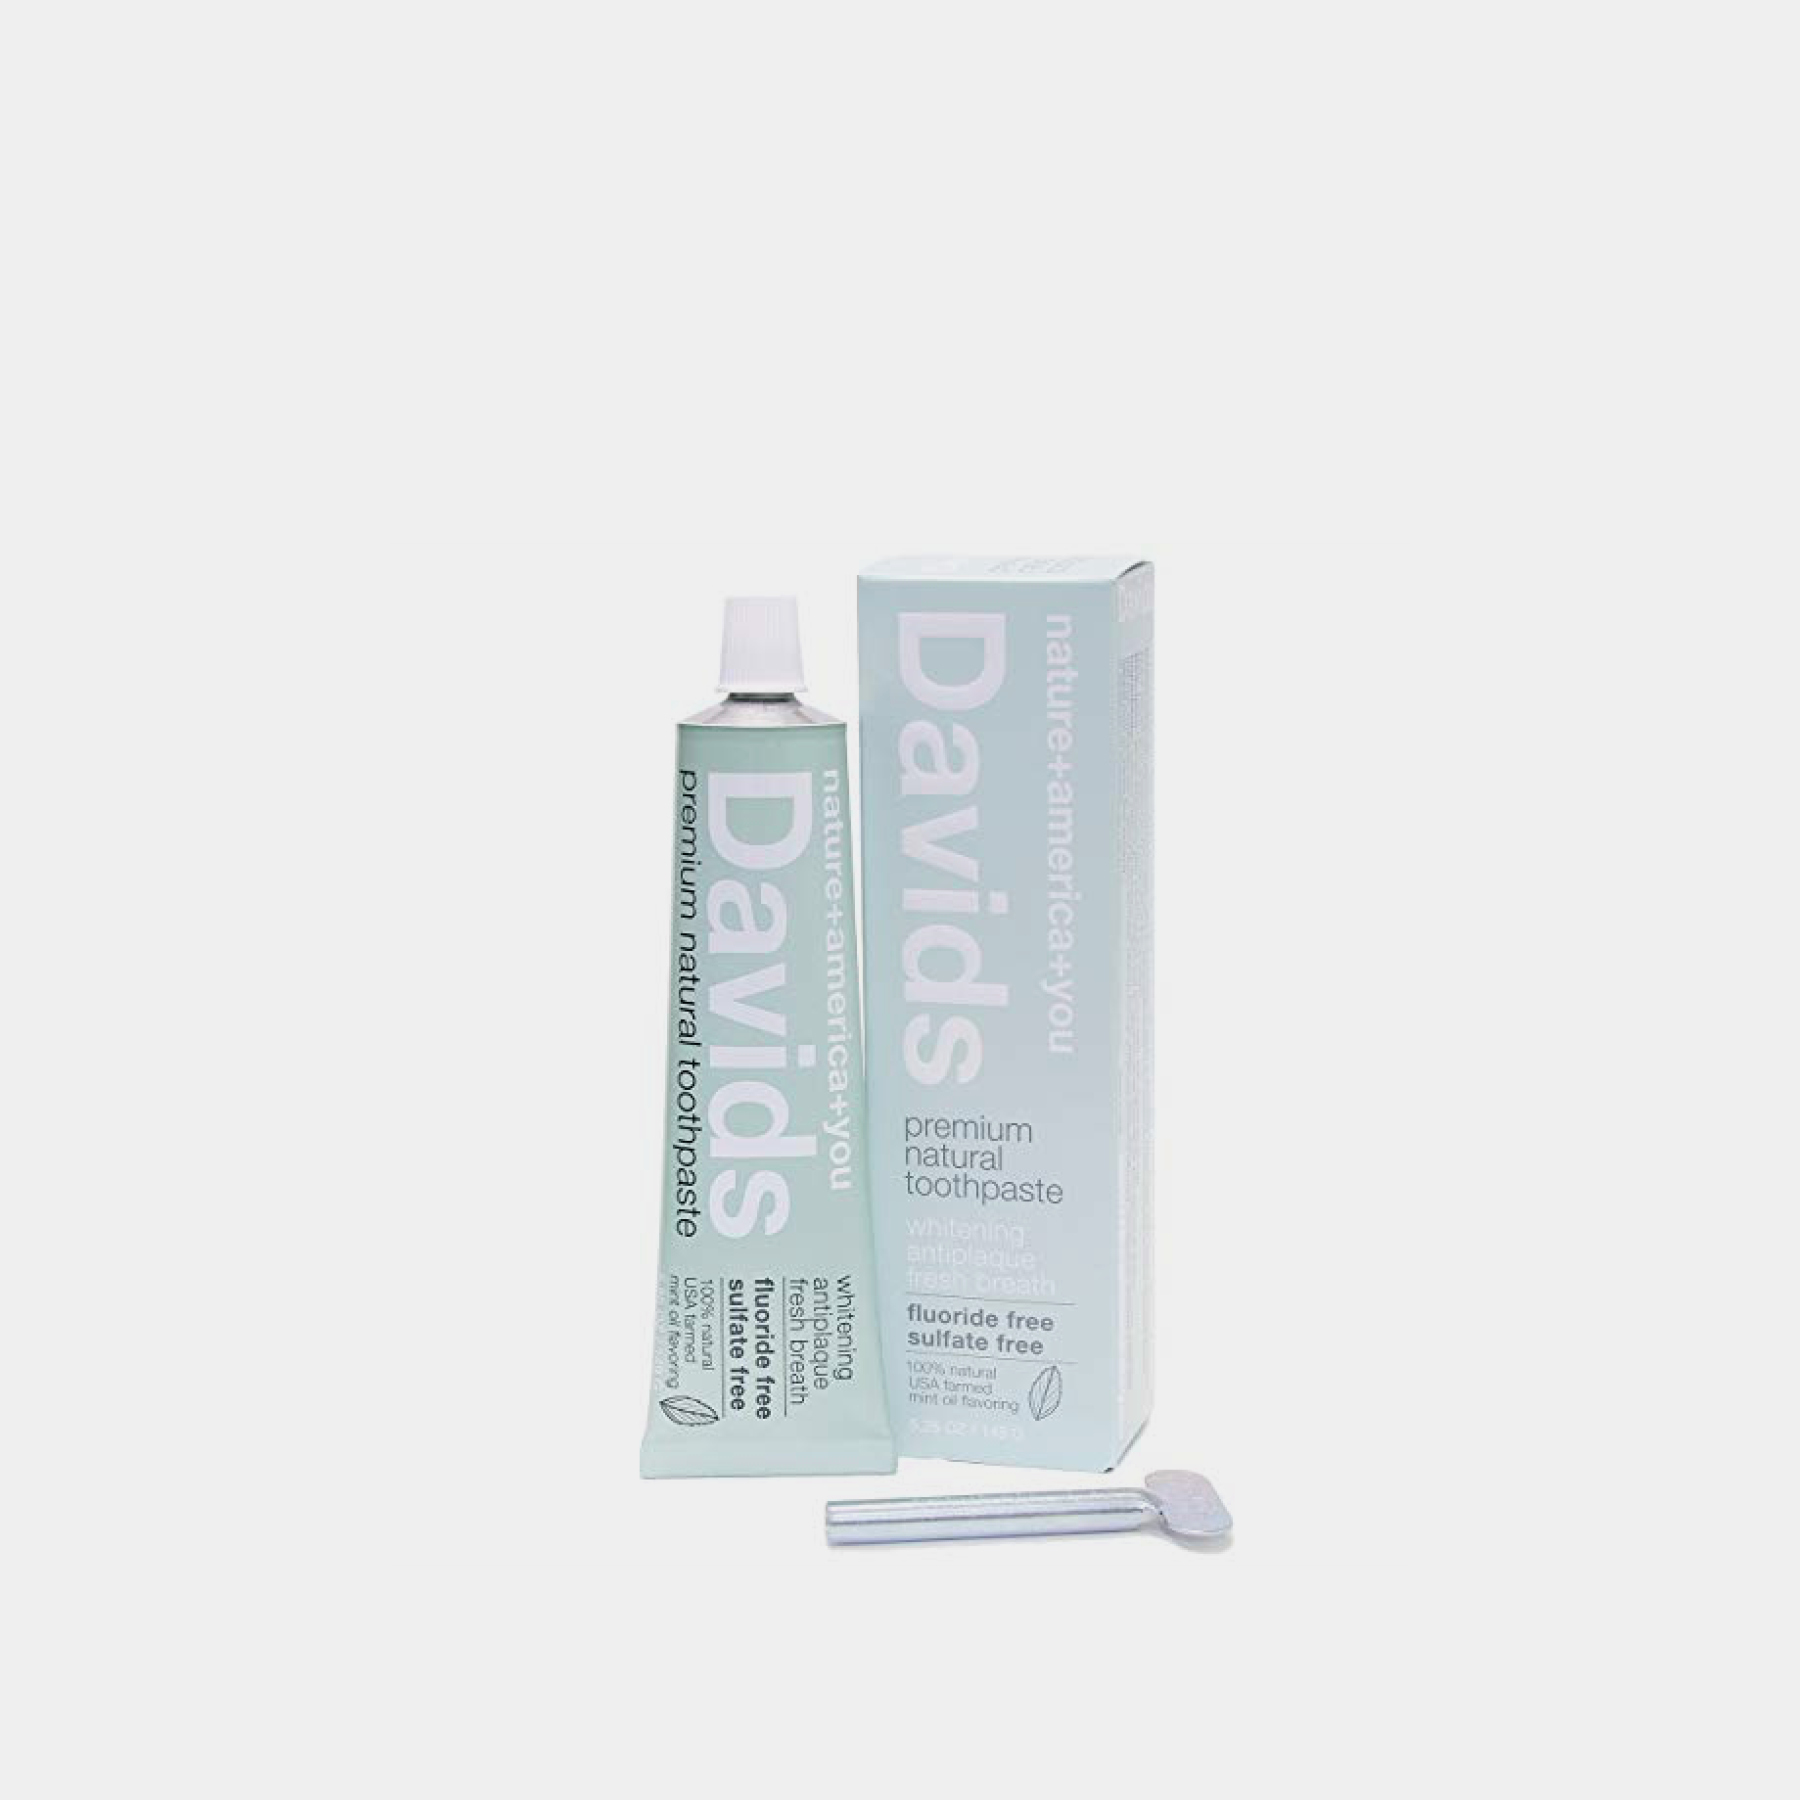 ALL-SORTS-OF-DAVIDS-TOOTHPASTE2